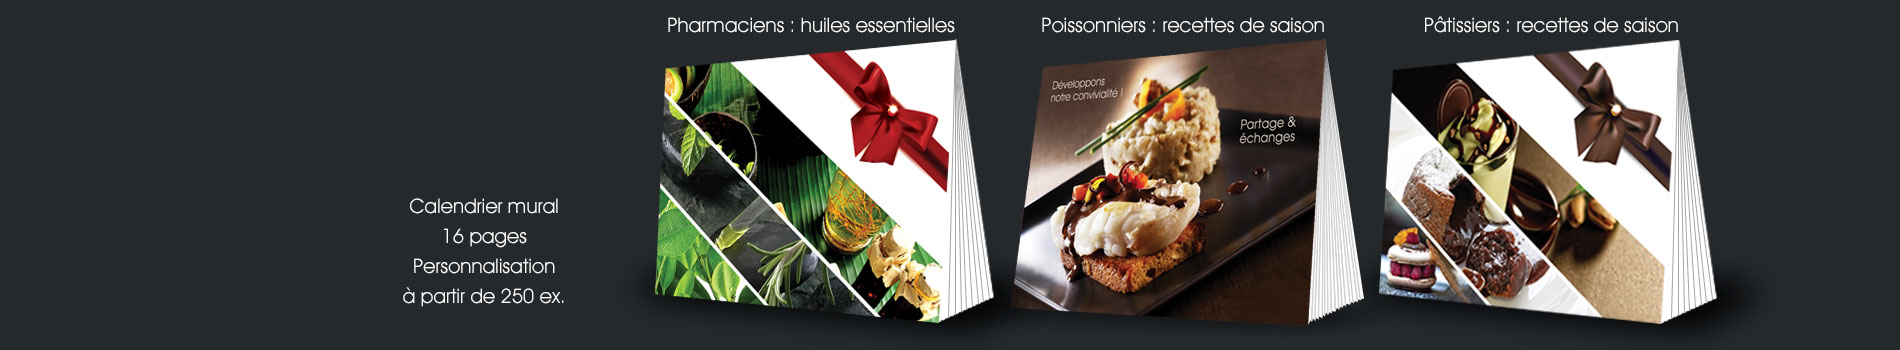 calendriers-boulangers-patissiers-pharmaciens